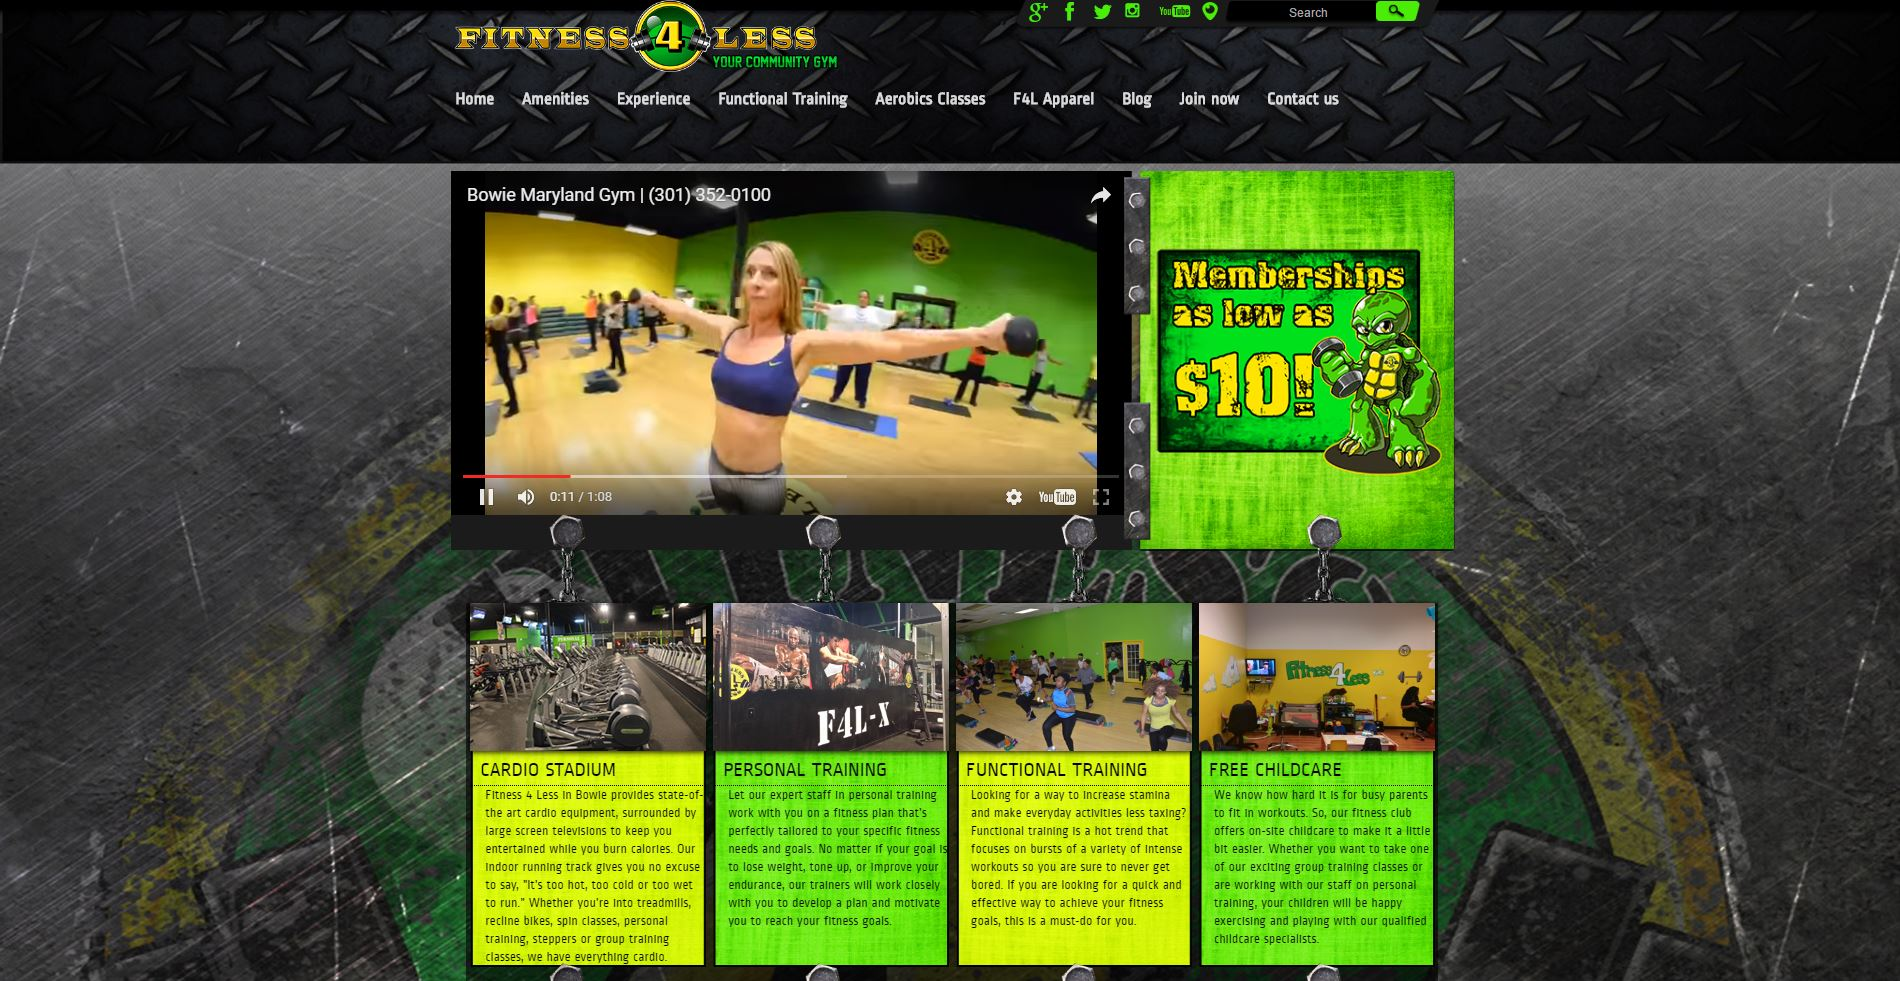 Fitness 4 Less Gyms